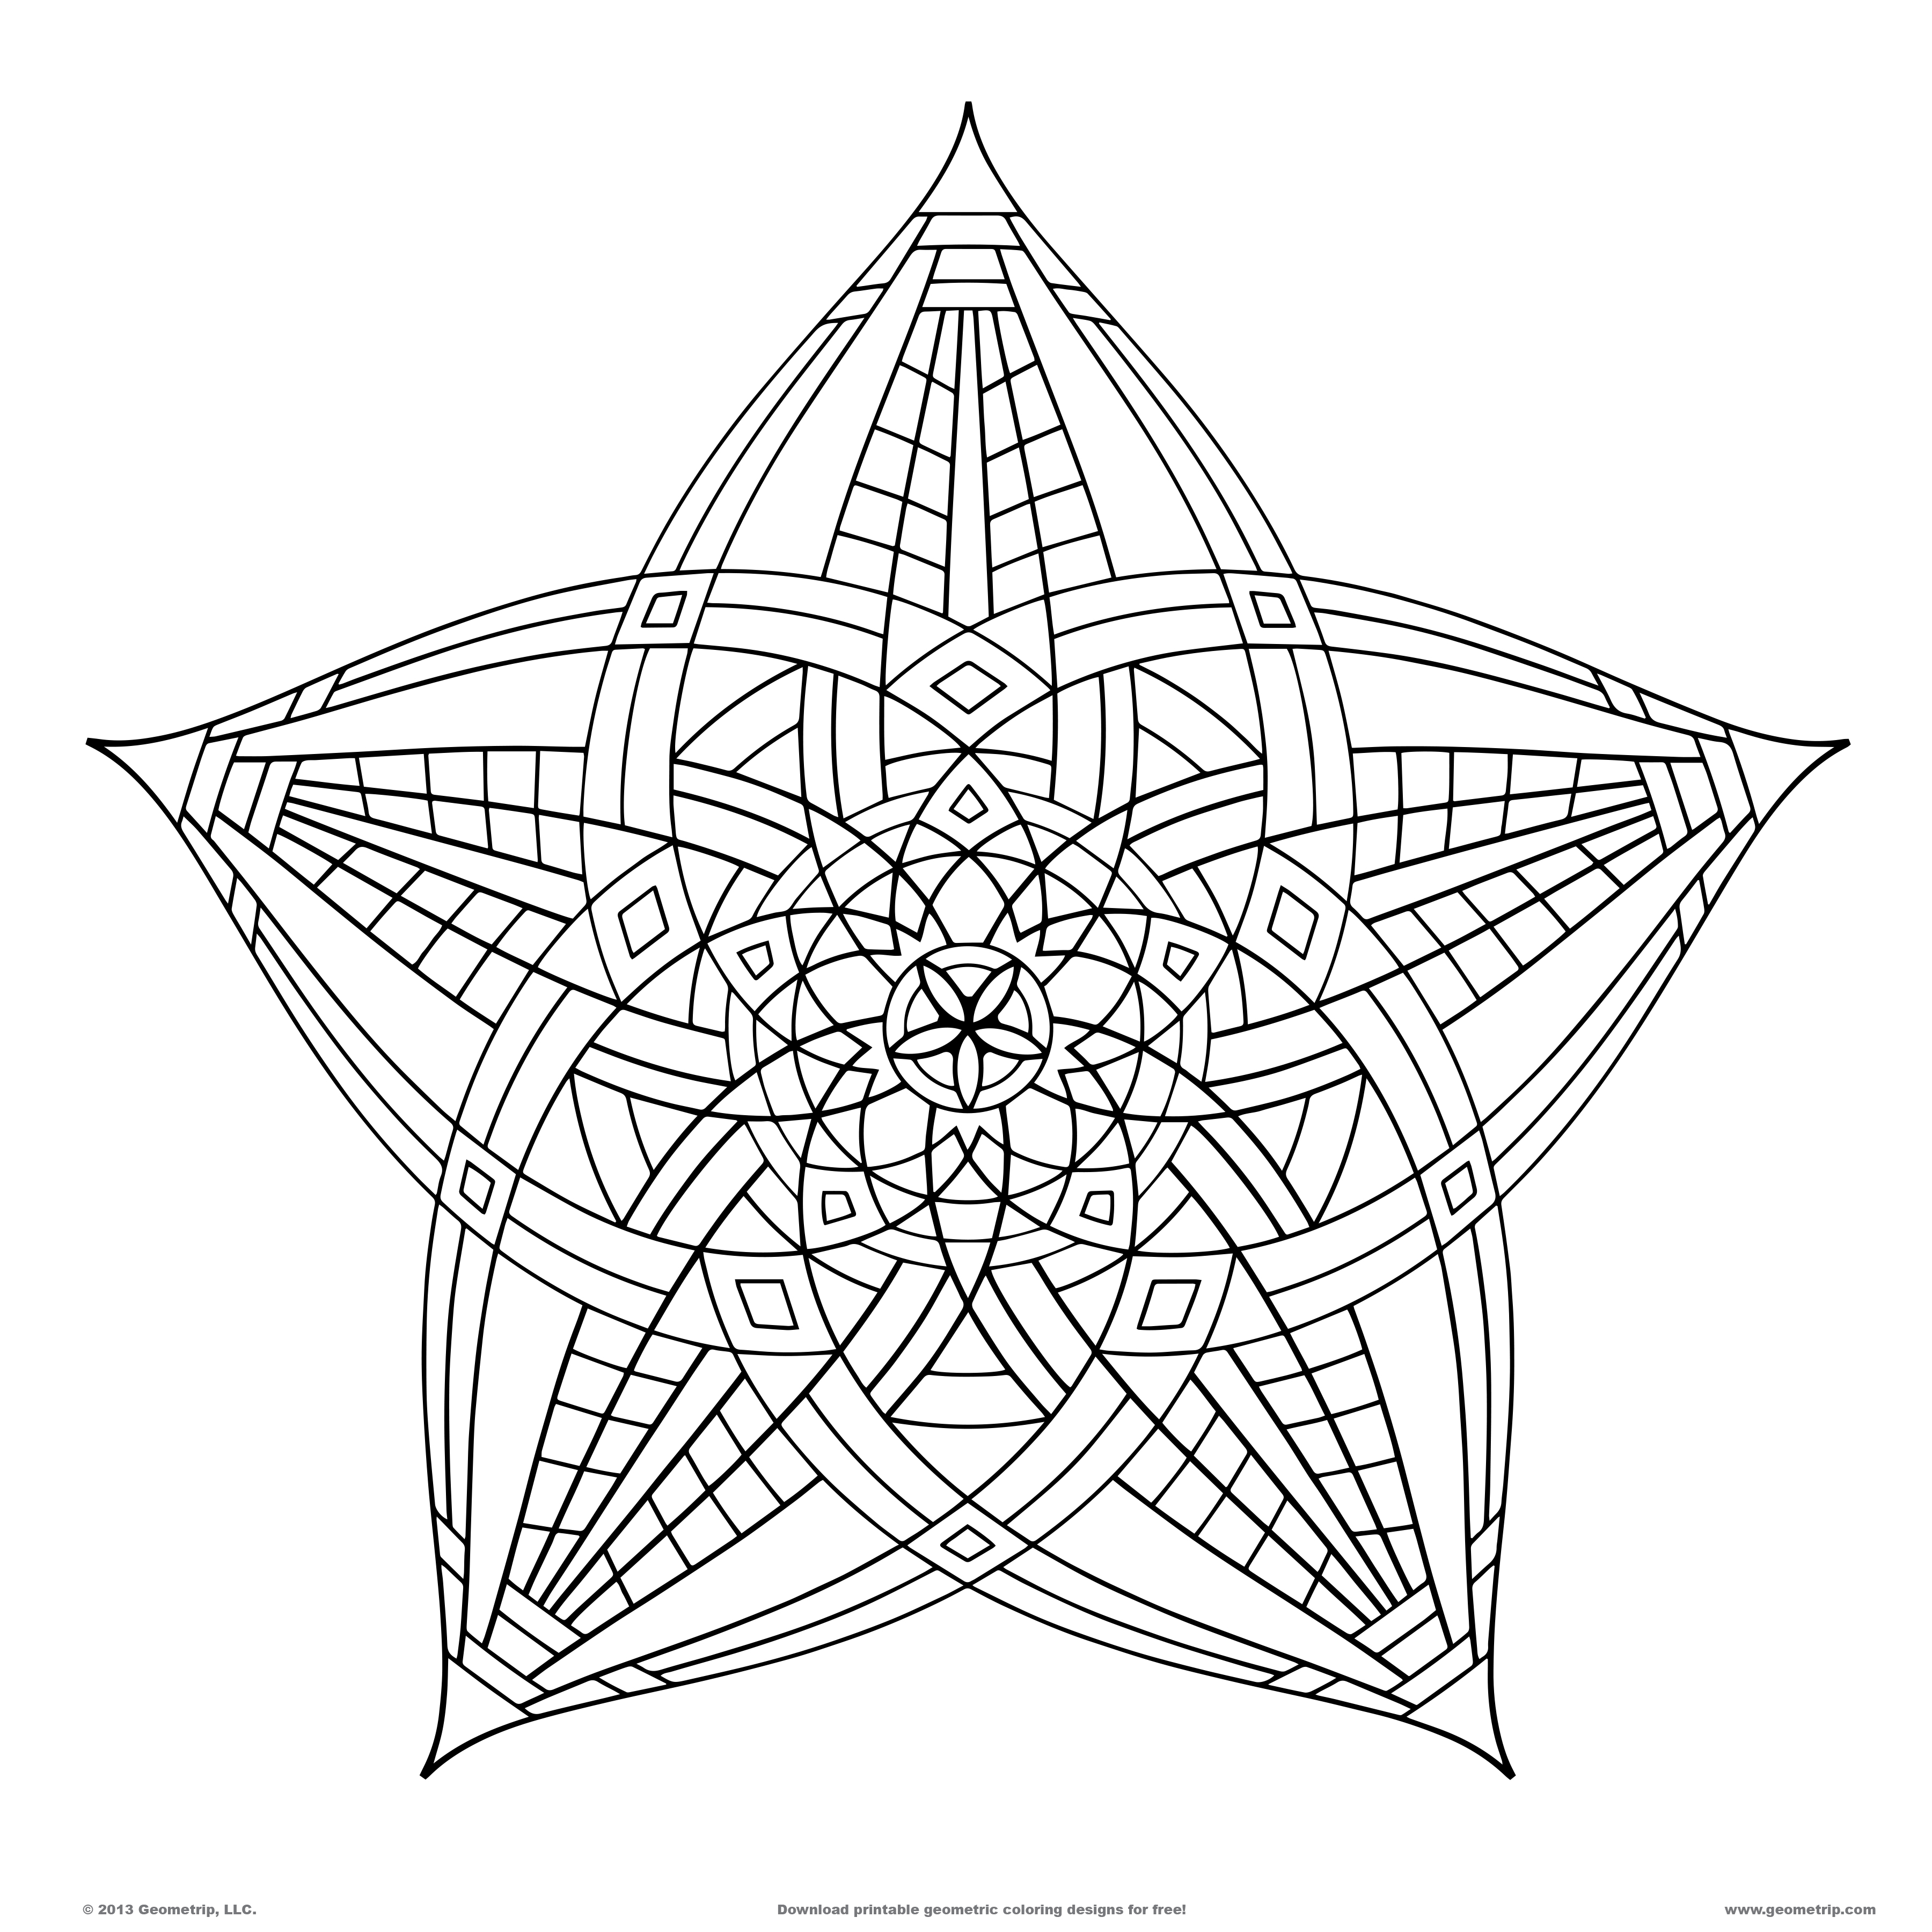 Coloring Pages Geometrical Coloring Pages geometrical coloring pages eassume com 70 geometric to print and customize